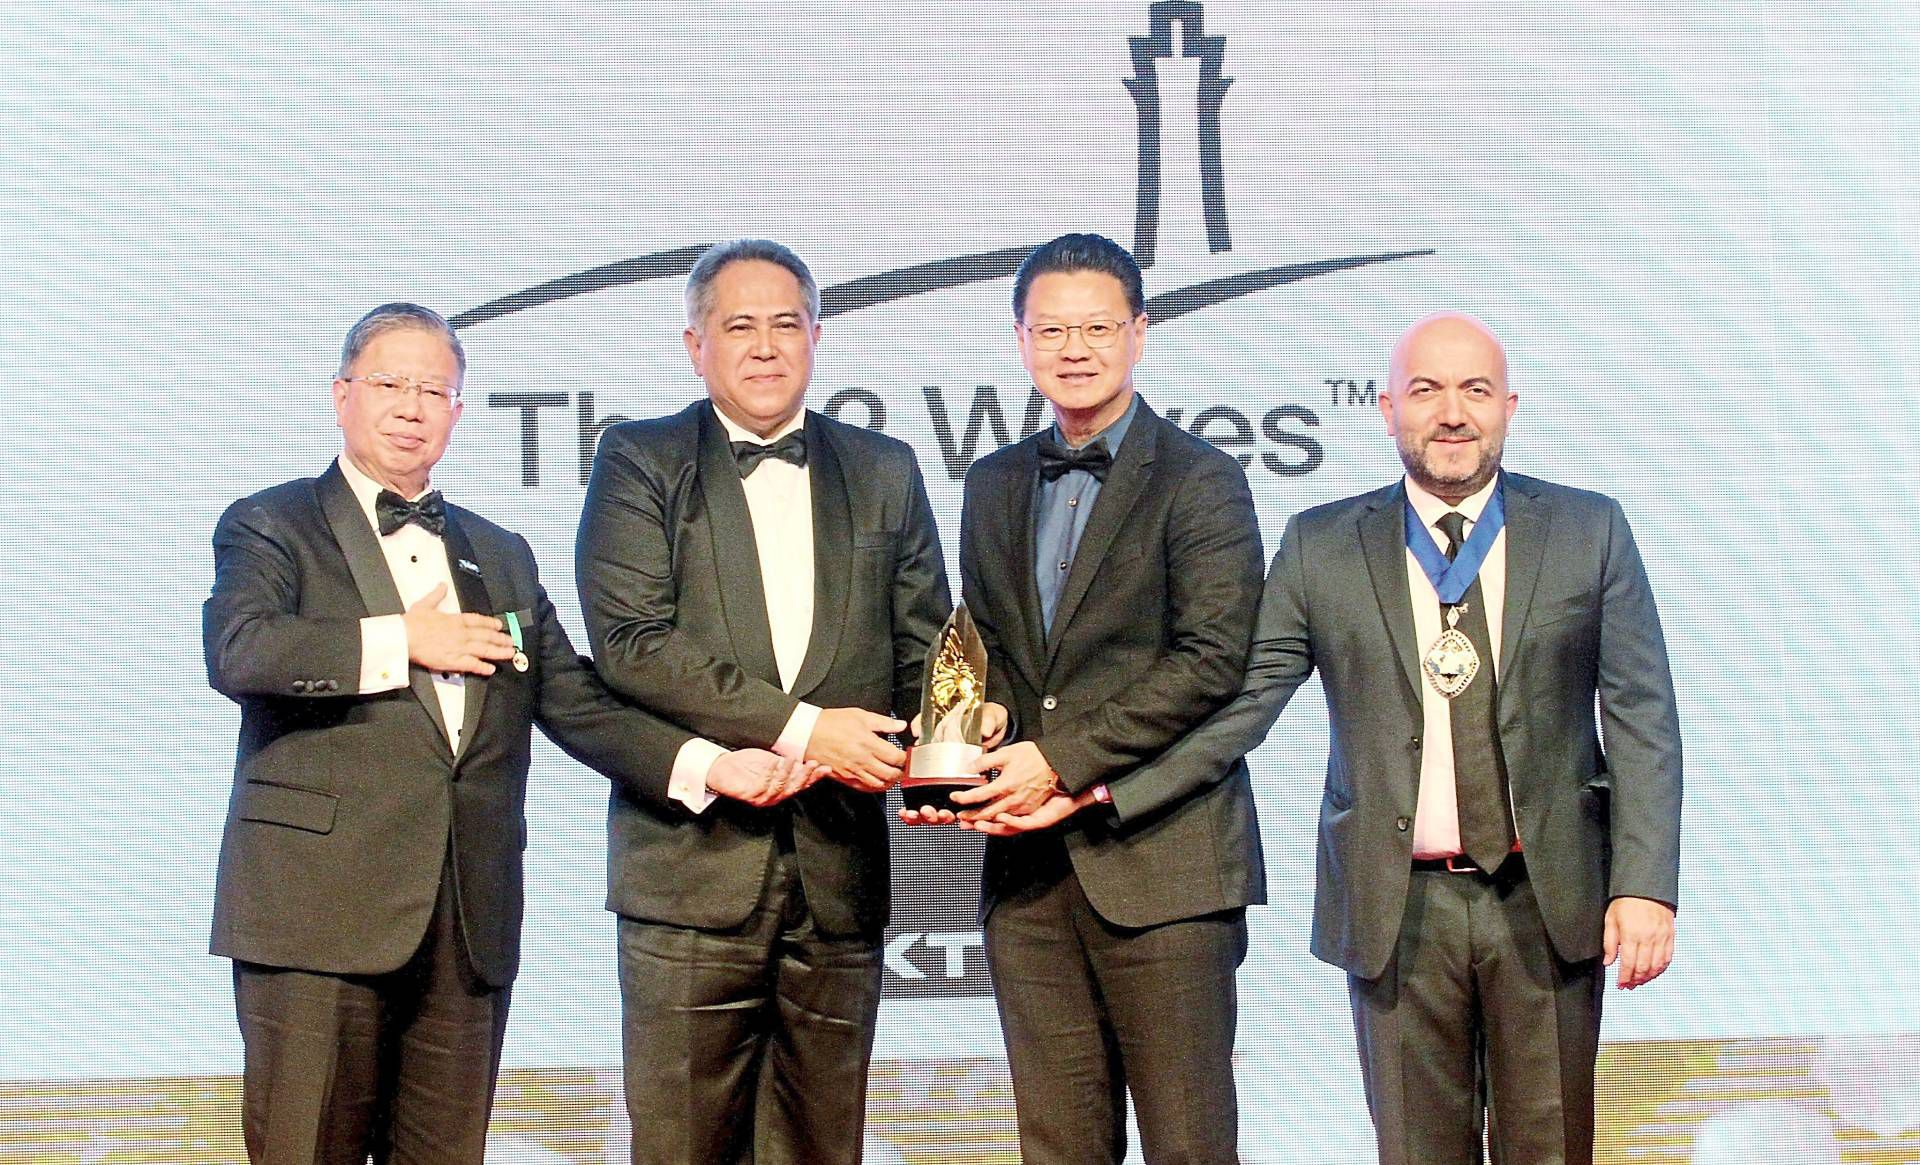 Tio (second from right) accepting the Fiabci-MPA 2019 award in the Industrial category.